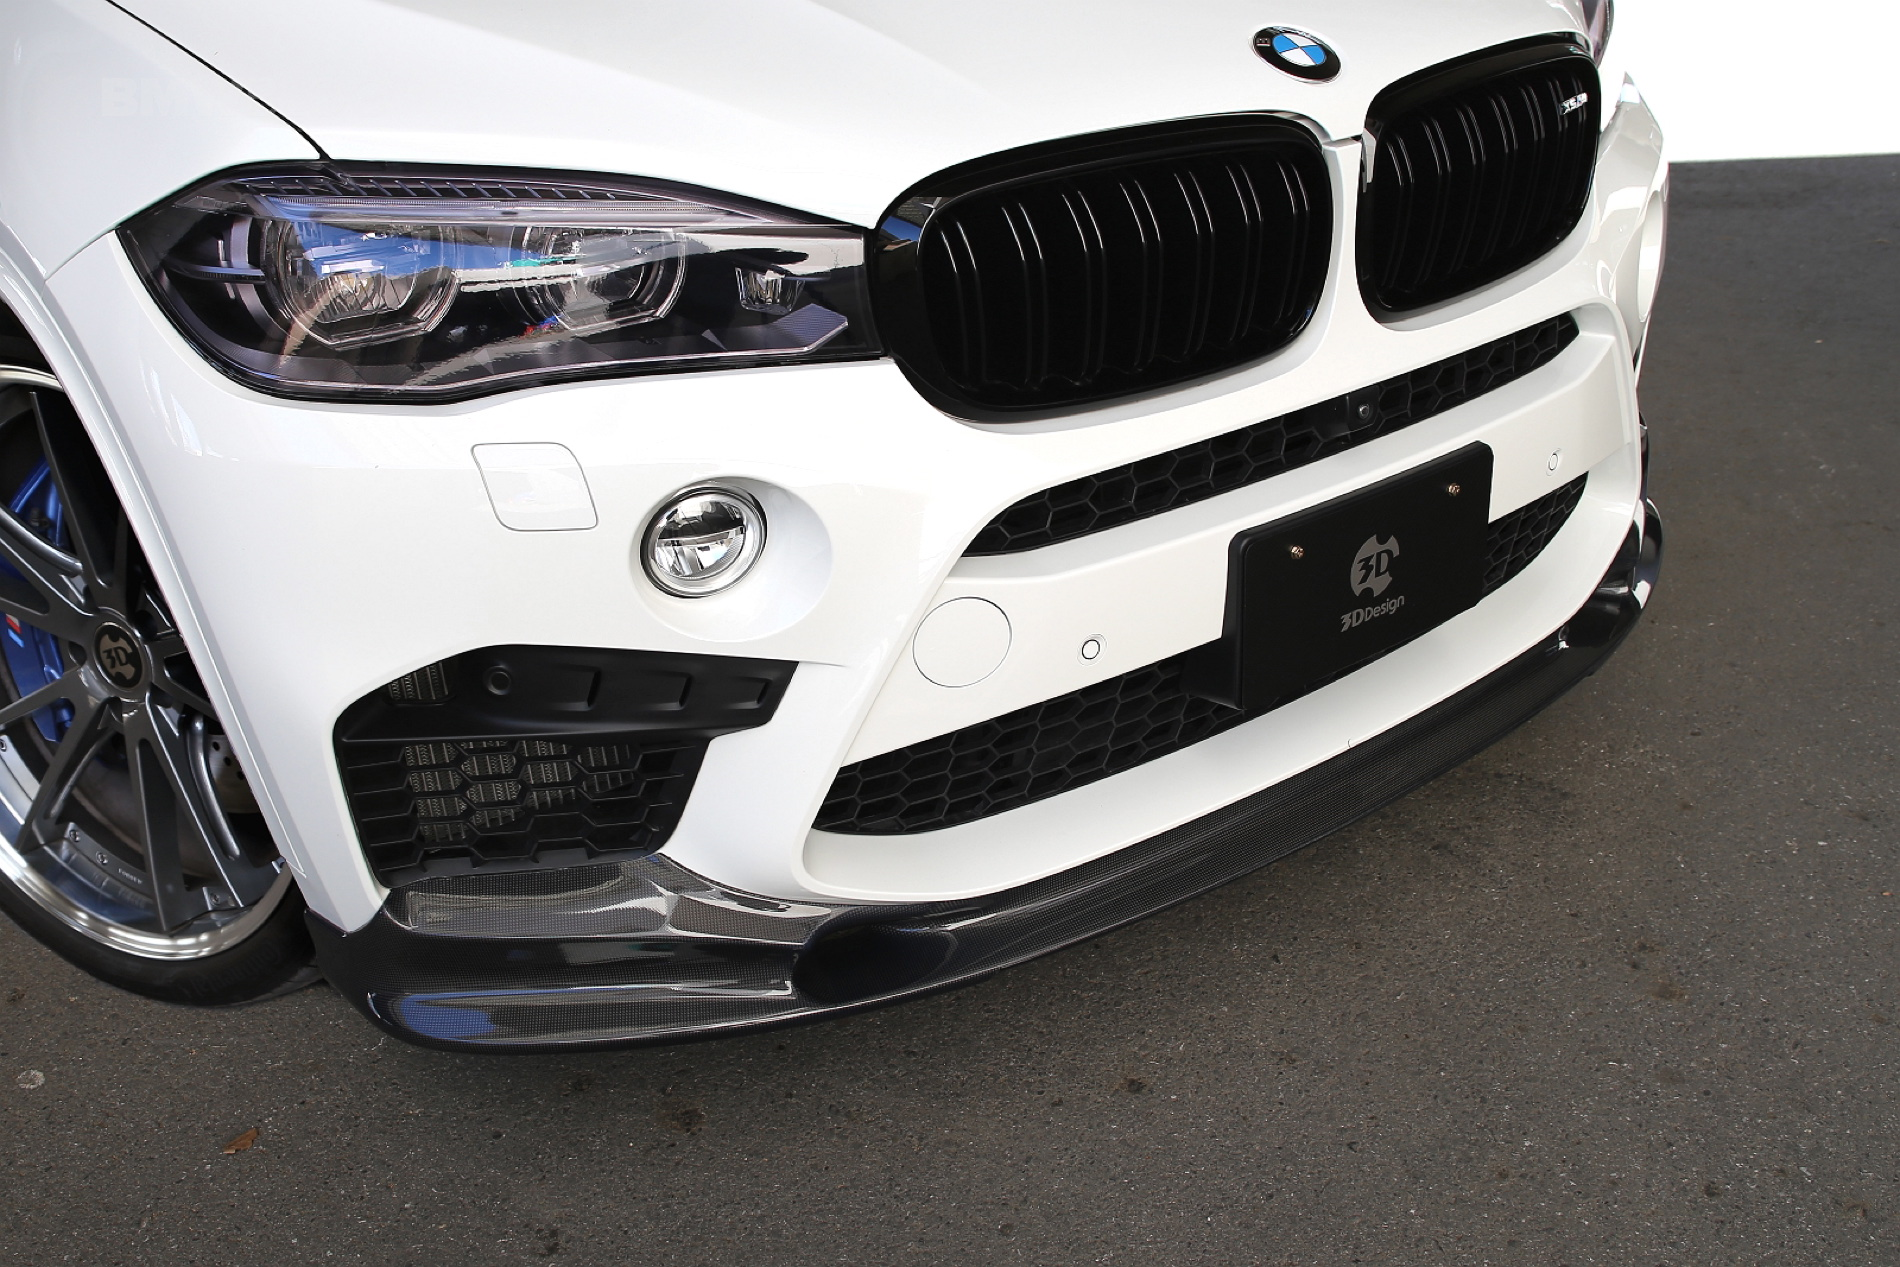 3d Design Reveals Their Tuning Package For The Bmw X5 M